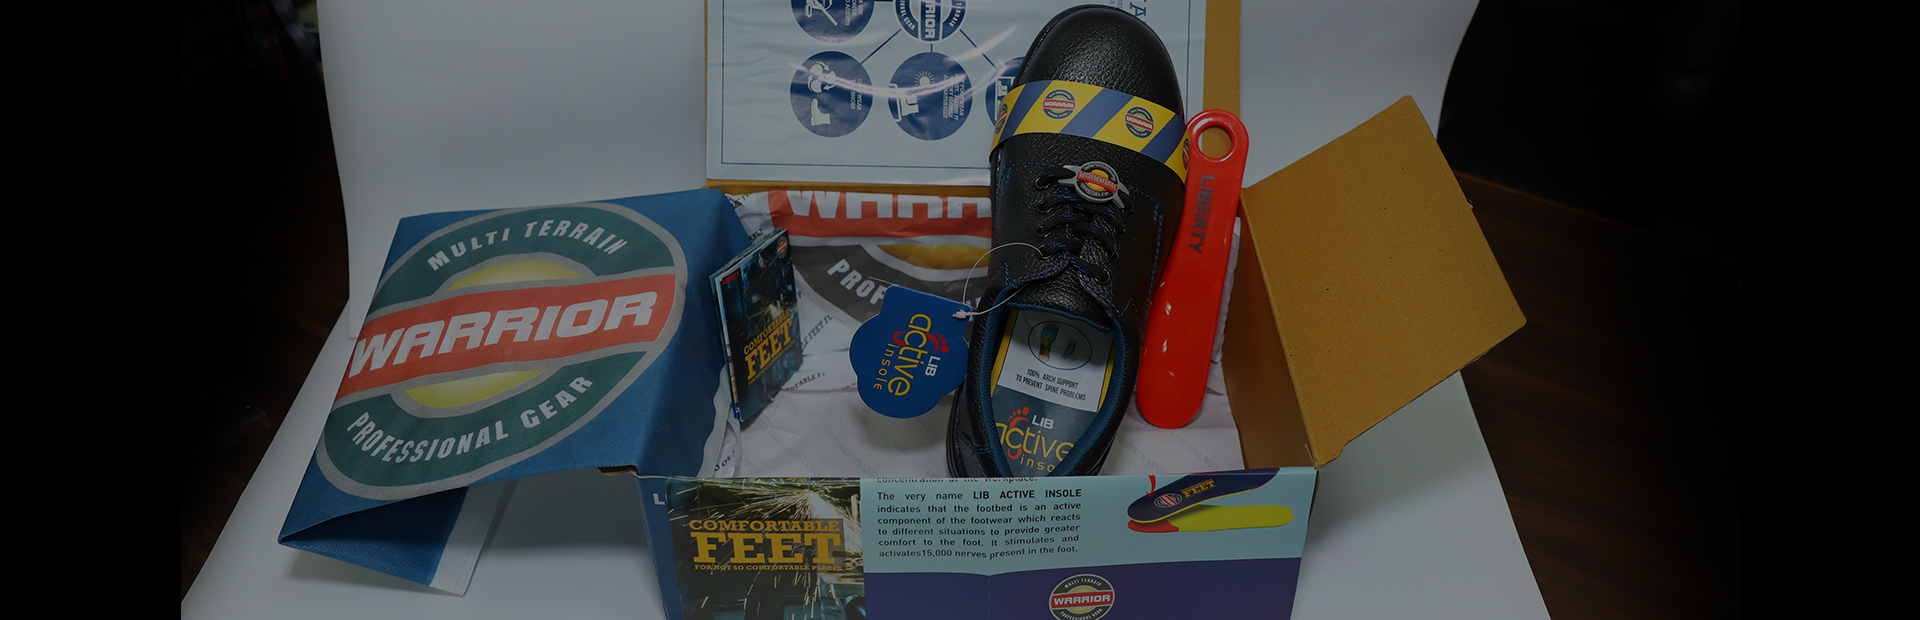 Warrior Safety Shoes Packaging